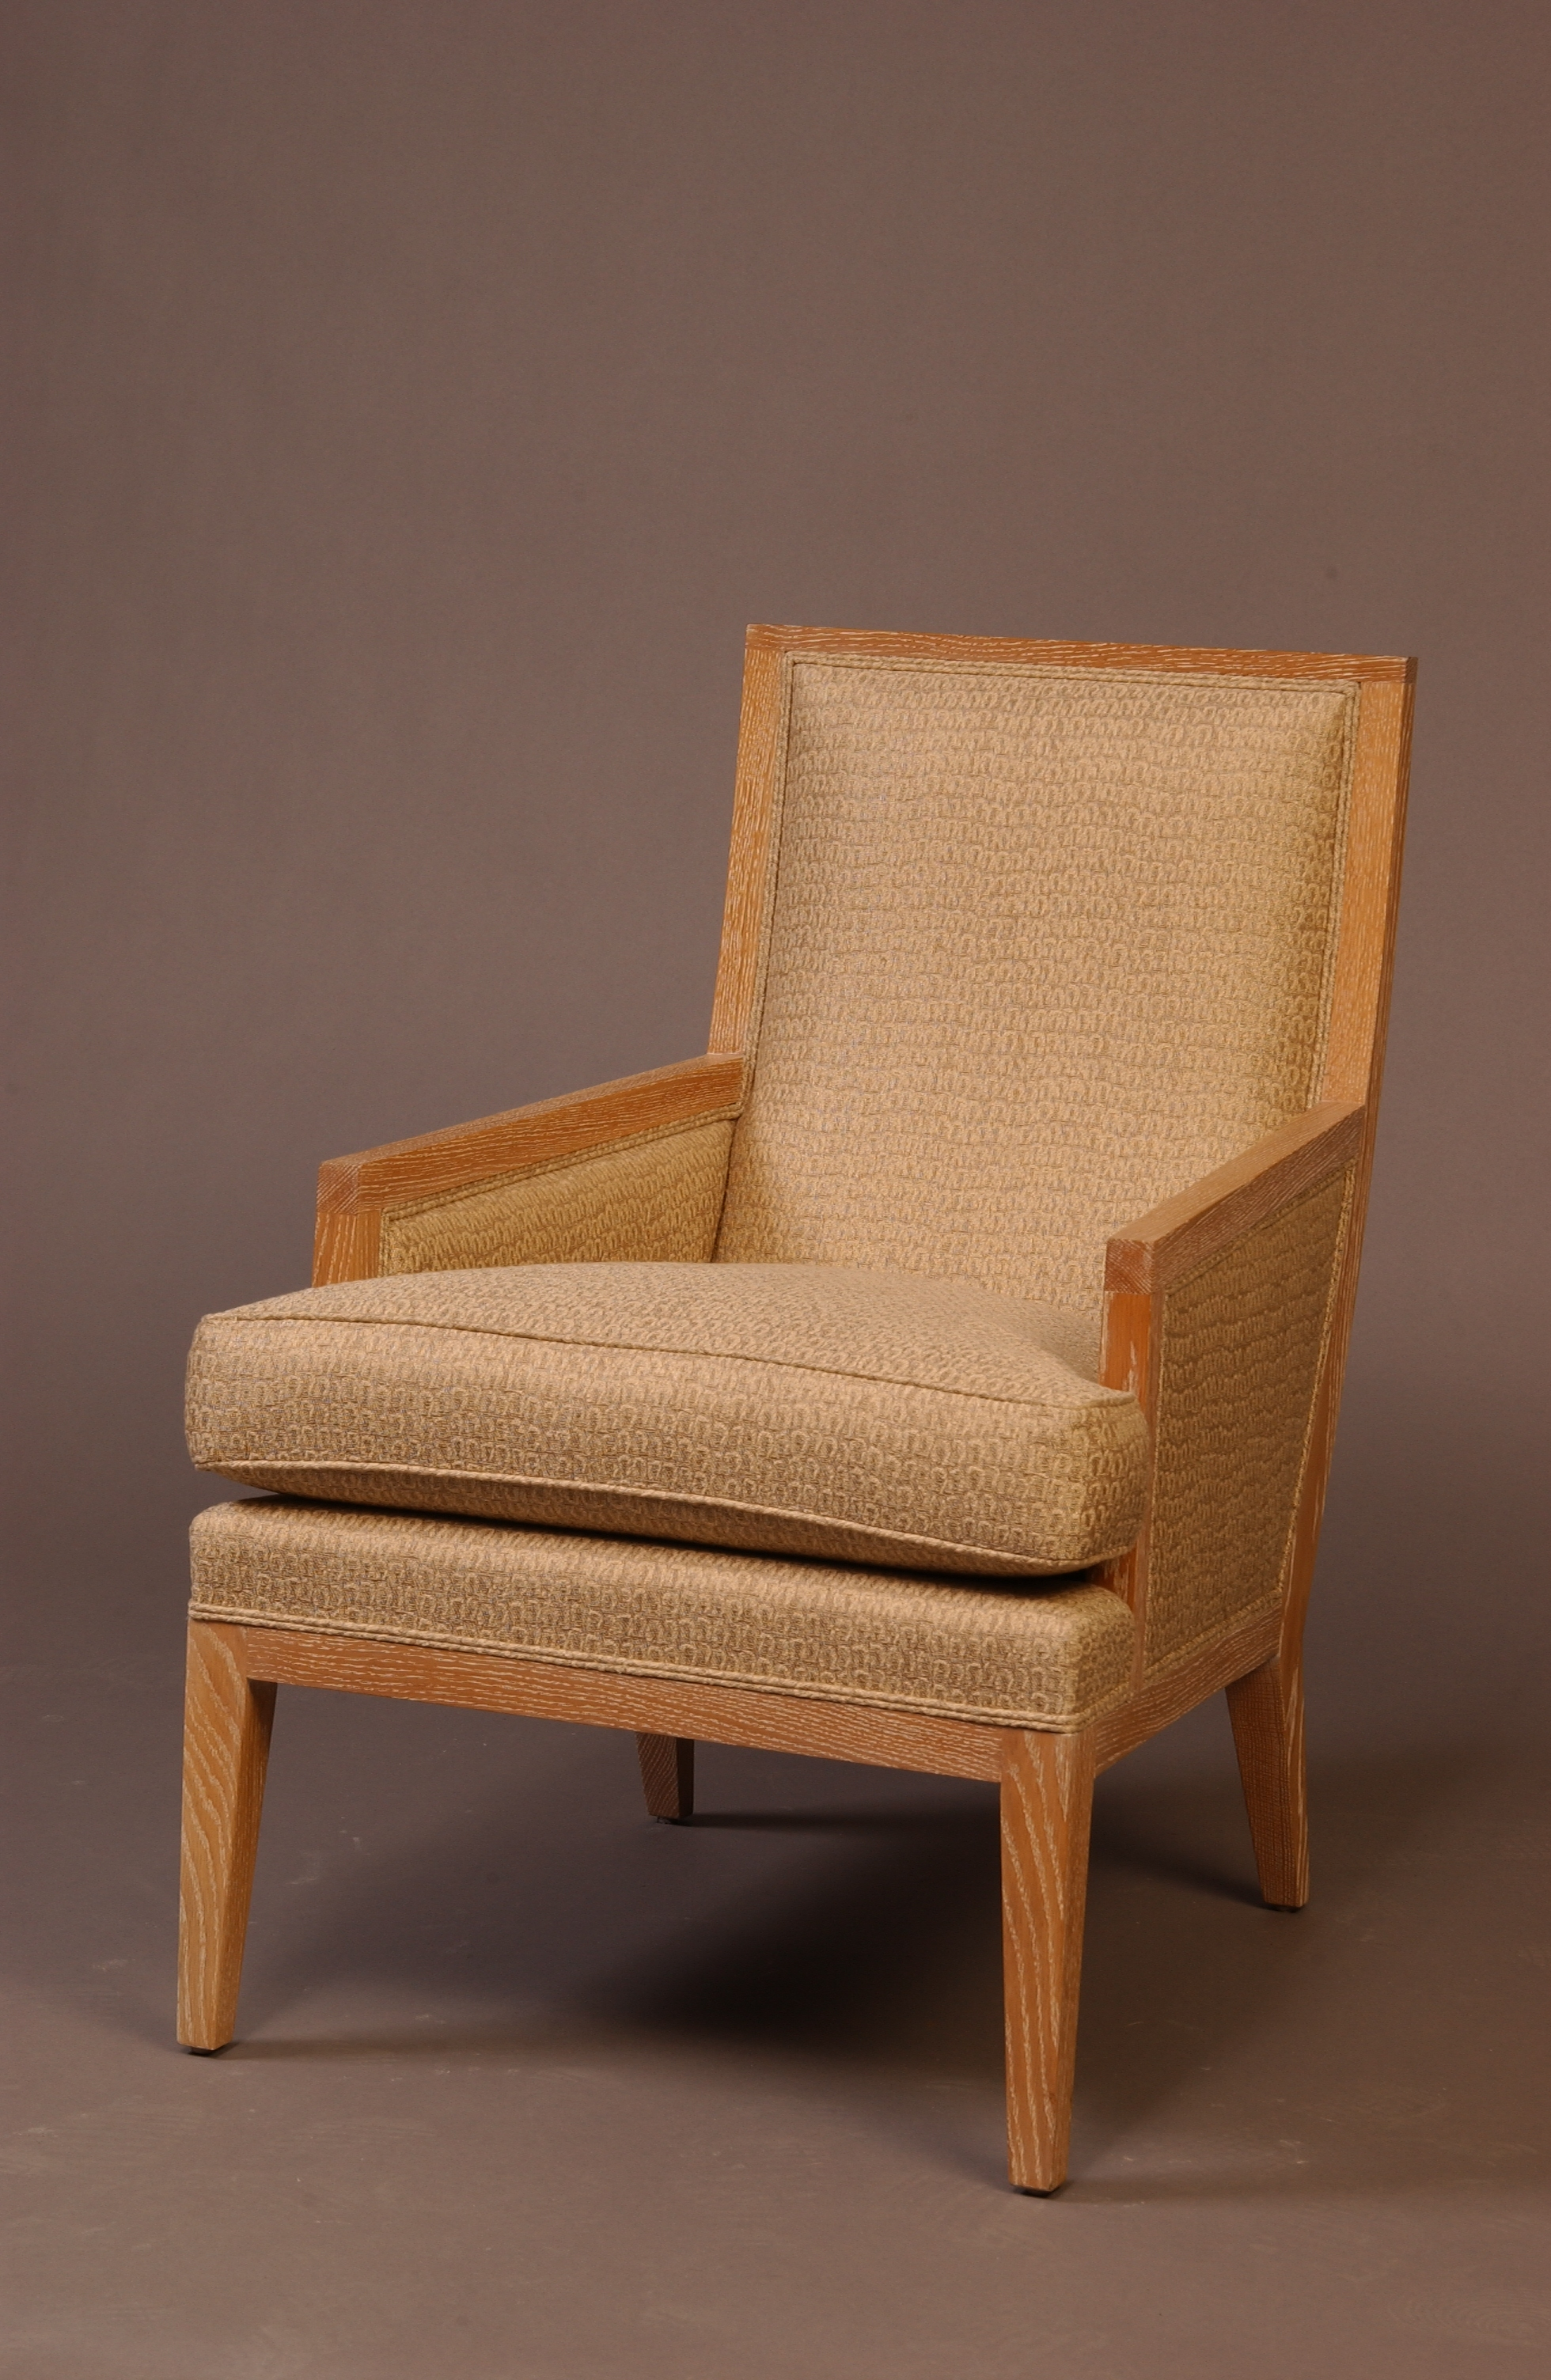 (2) Cerused oak arms chairs – Angled View